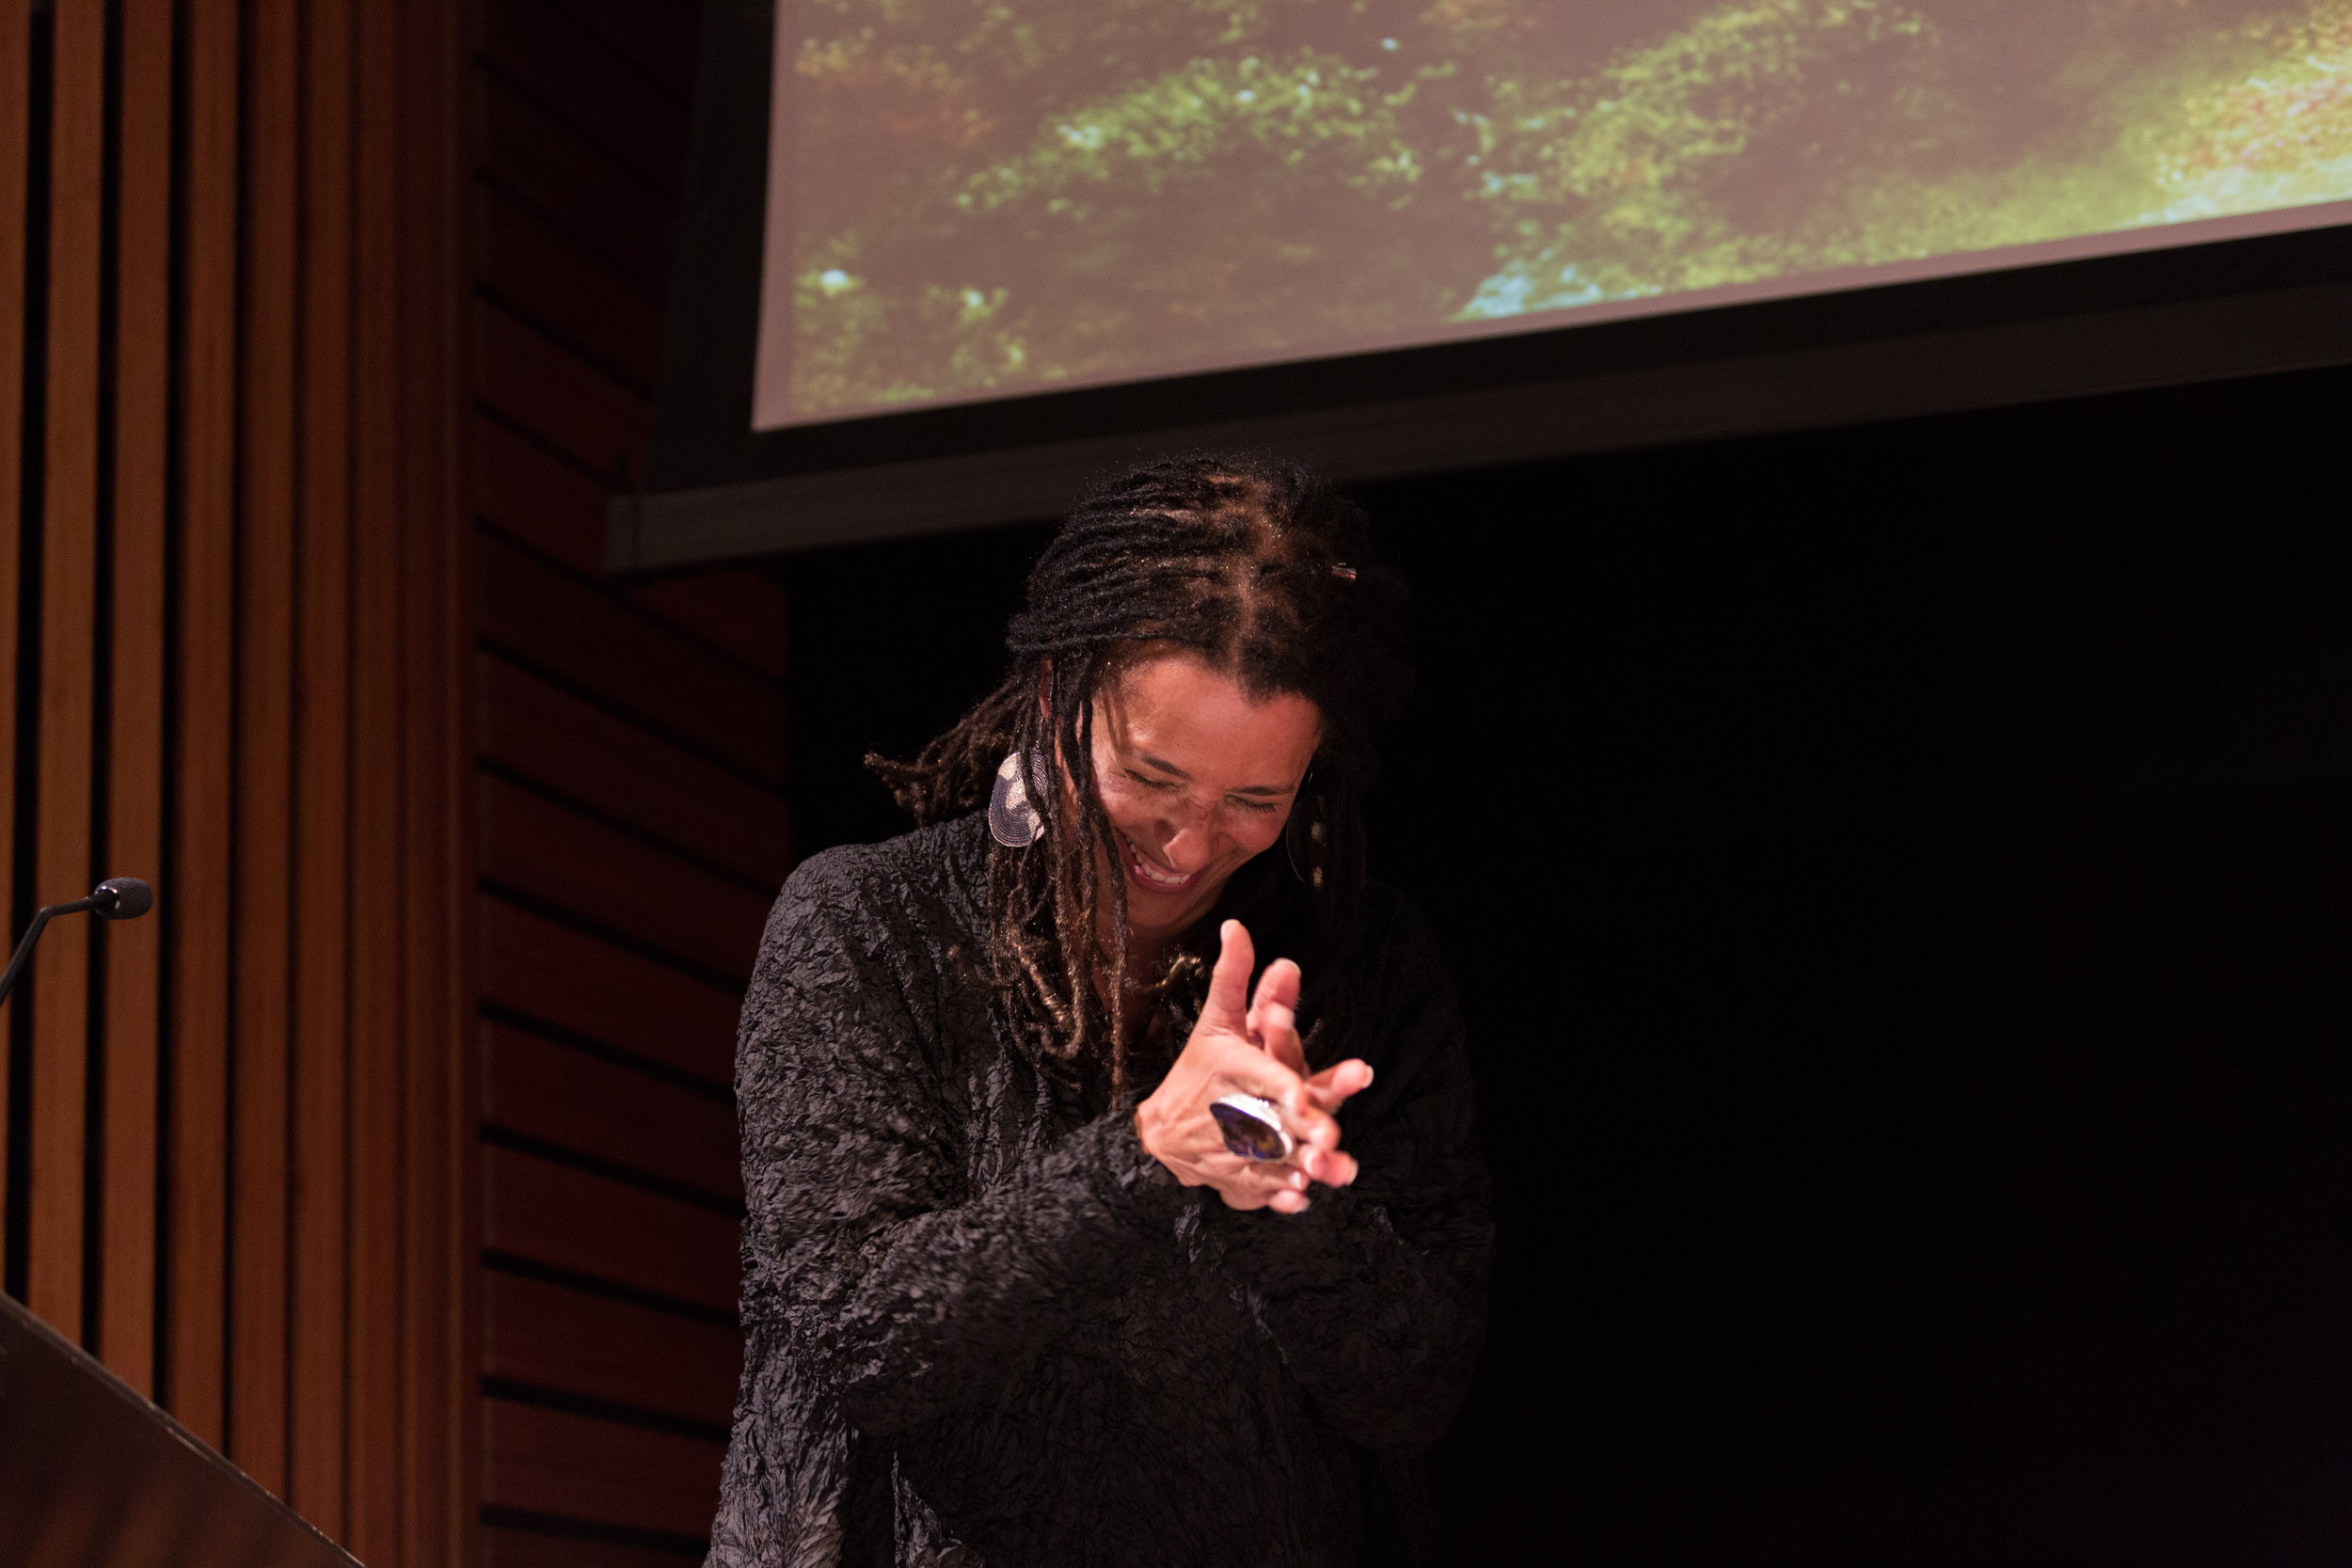 Dr. Finney is a cultural geographer who wrote the book  Black Faces, White Spaces.  She works on emphasizing the relationship between African Americans and environmentalism and encouraging African Americans to explore the outdoors.